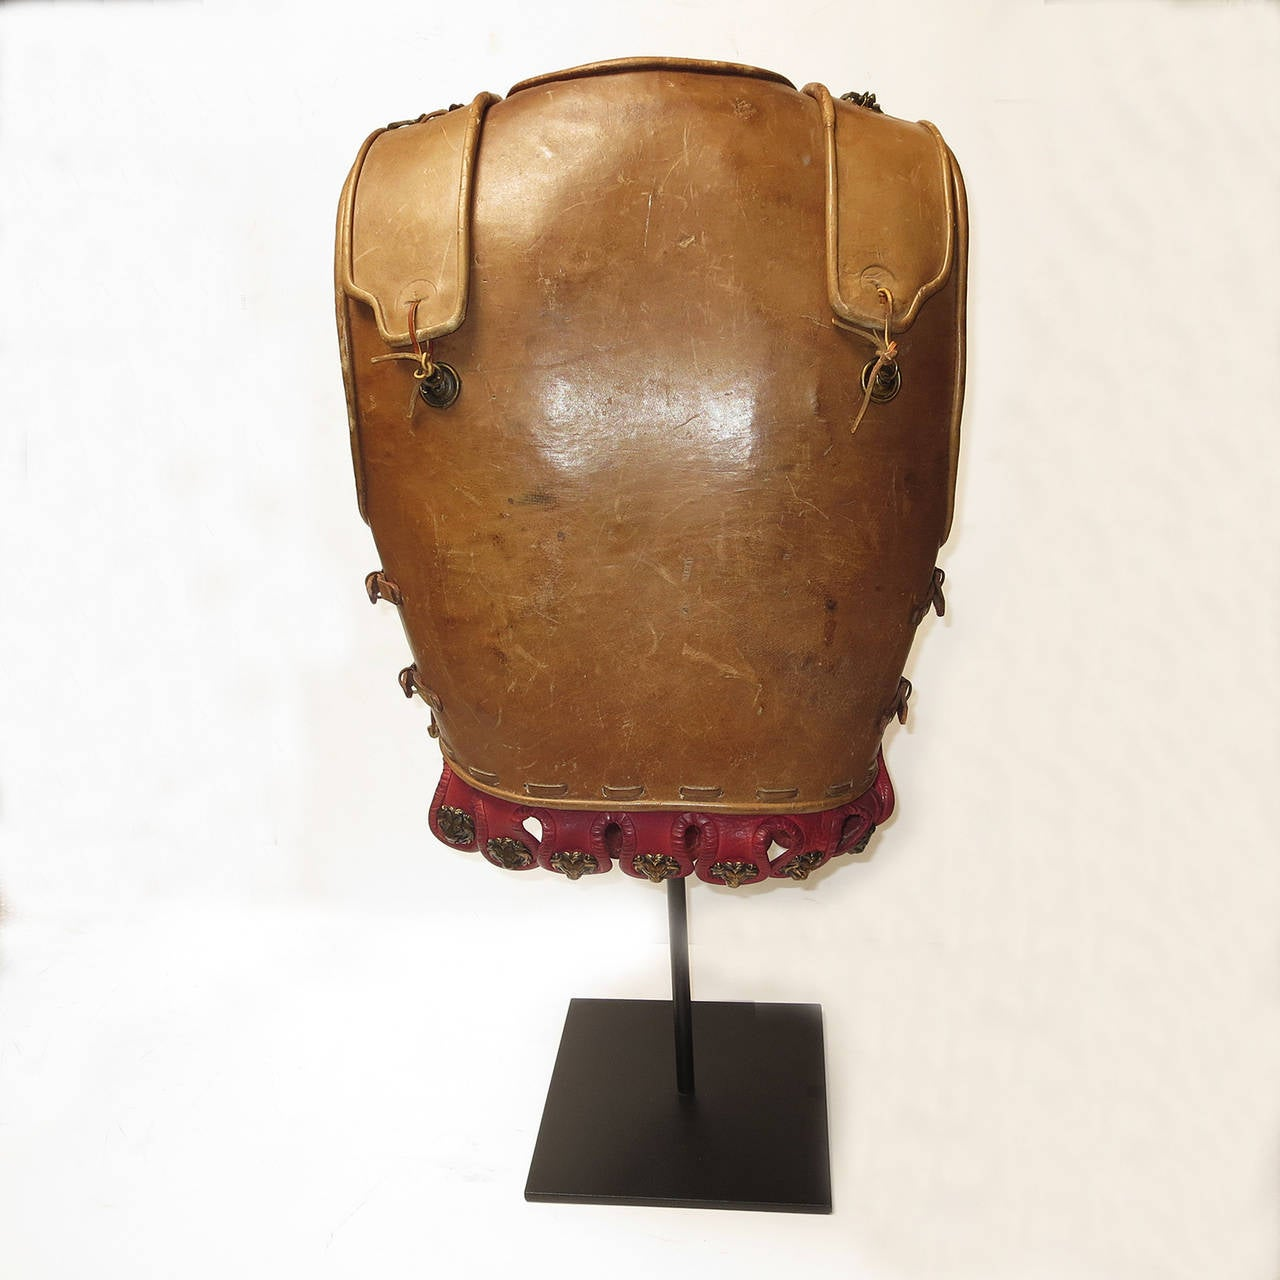 "Telly Savalas Leather Chest Plate Prop from ""The Greatest Story Ever Told"", 1965 3"